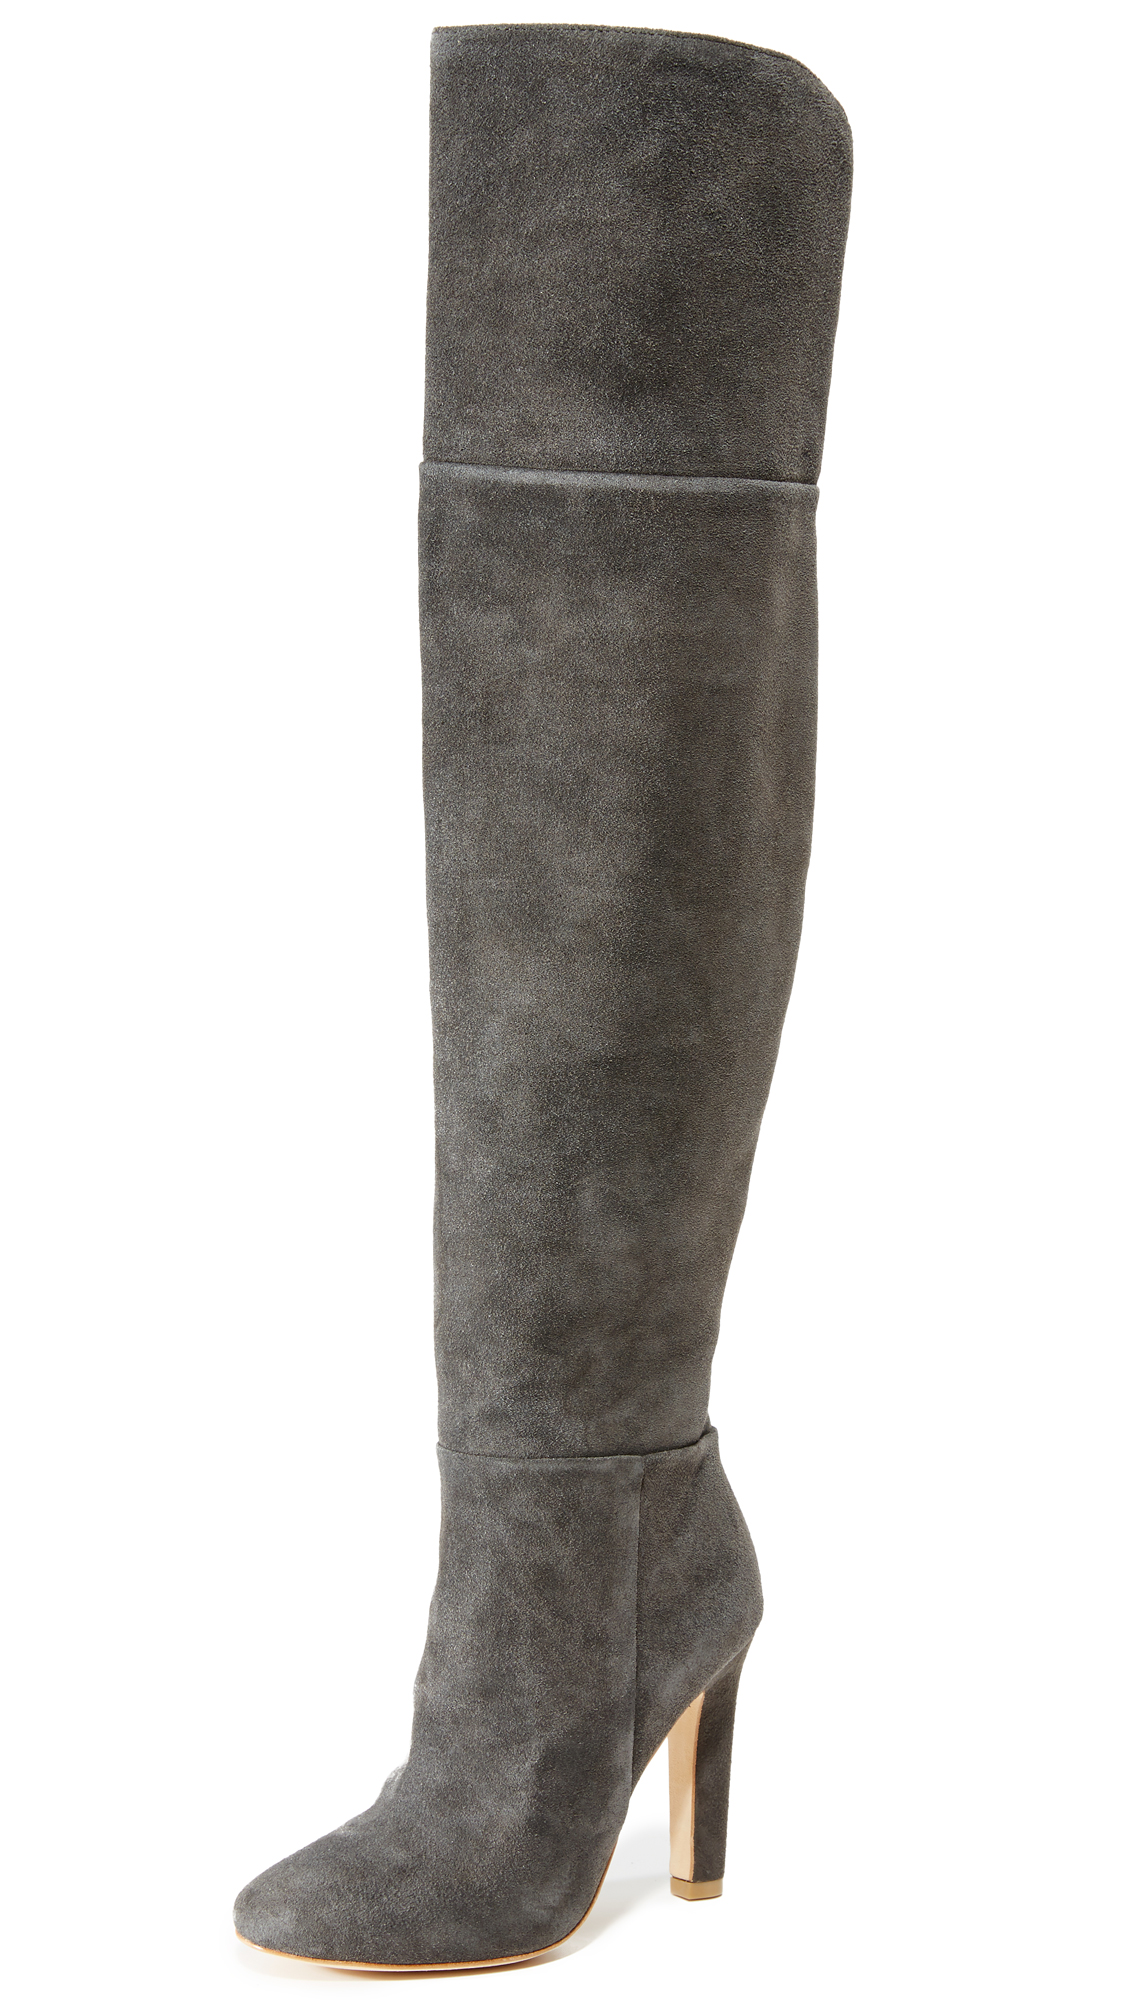 Joie Bentlee Tall Boots - Graphite